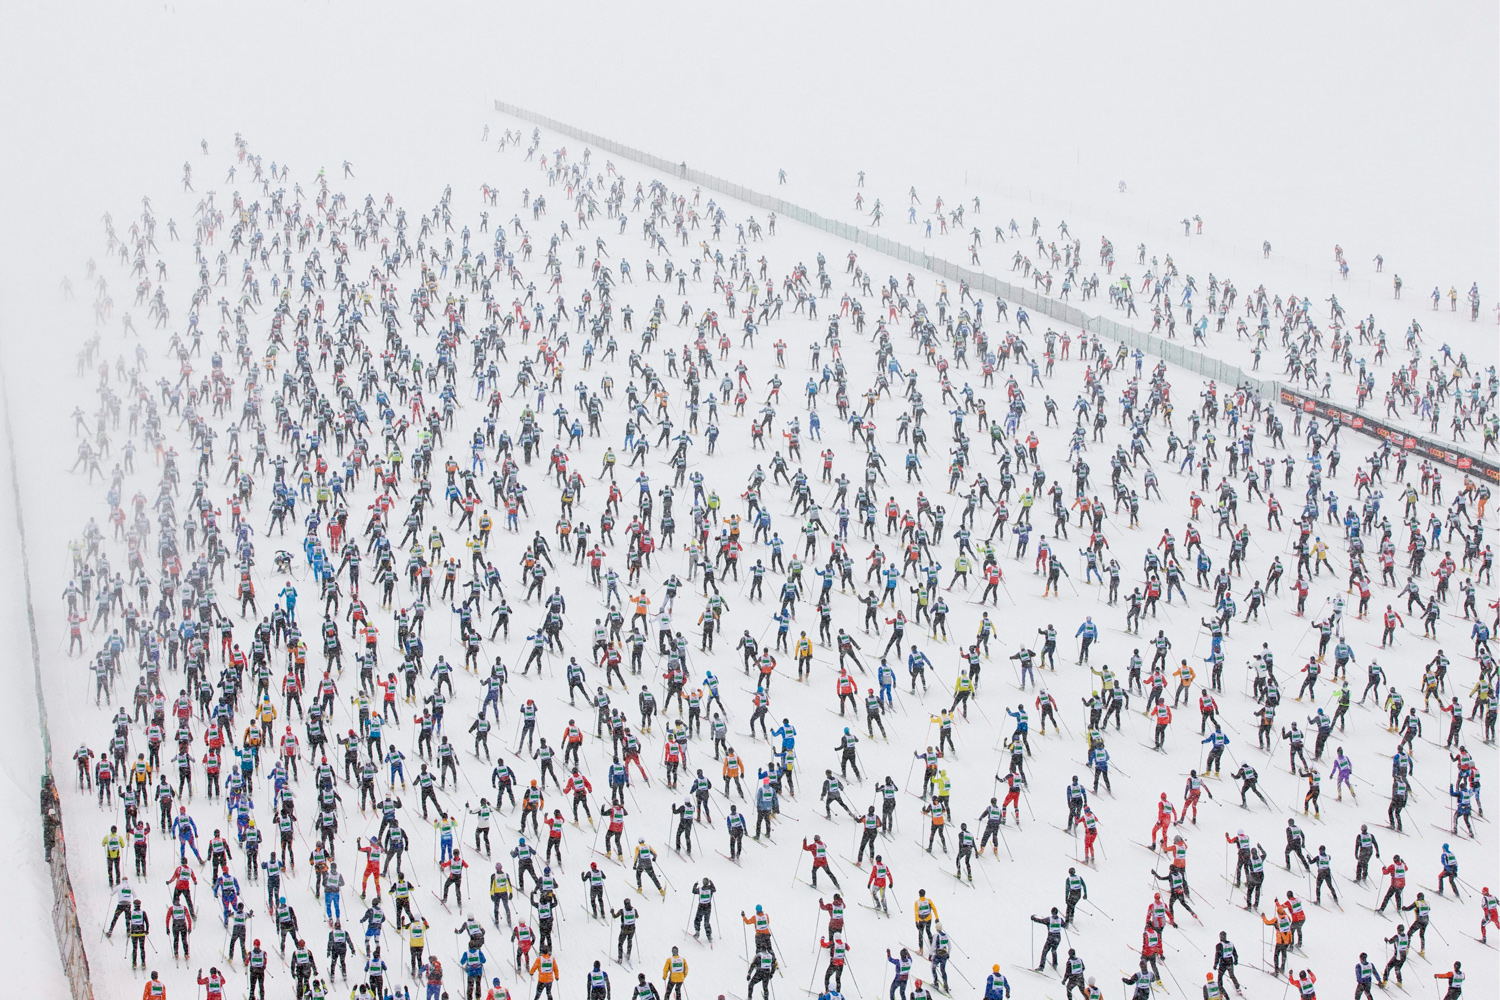 March 13, 2011. The Engadine cross-country skiing marathon from Maloja to S-Chanf in south Eastern Switzerland. Around 12,000 people participated in the event.